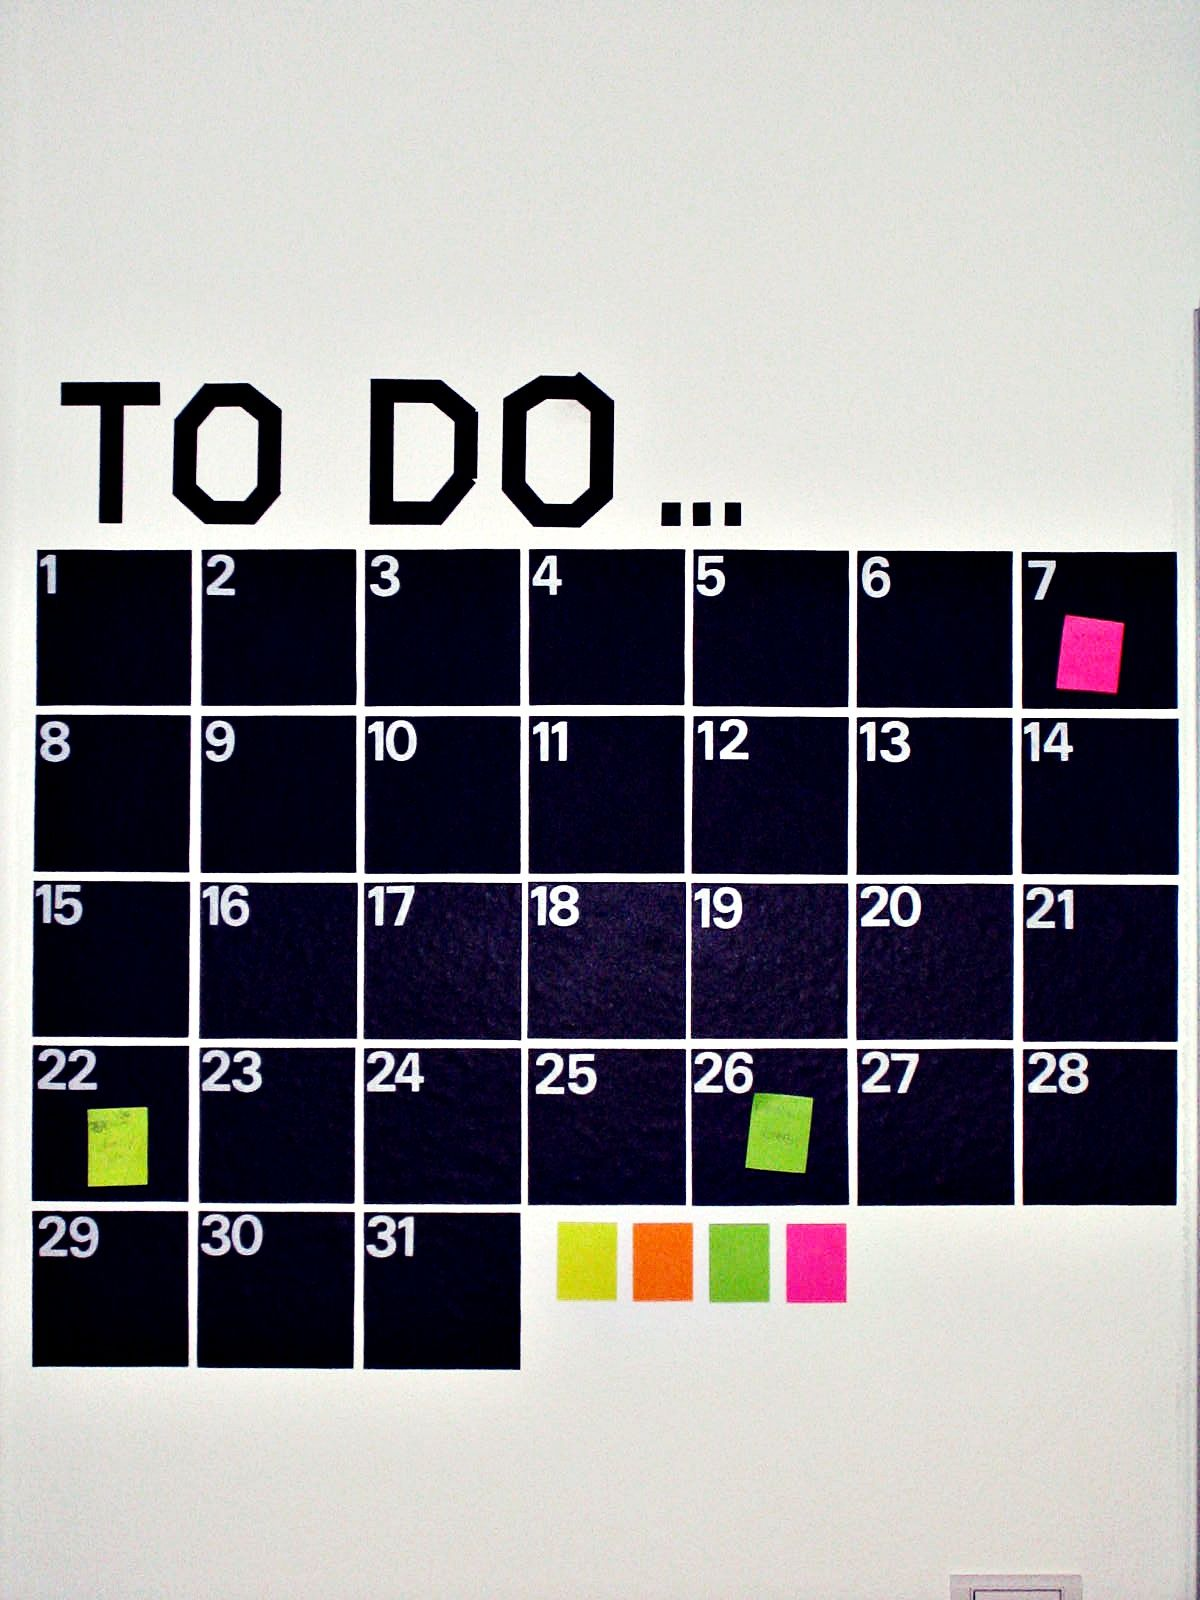 Tafelfolie In Der Küche Kalender Aus Tafelfolie Diy Ideas So Cool